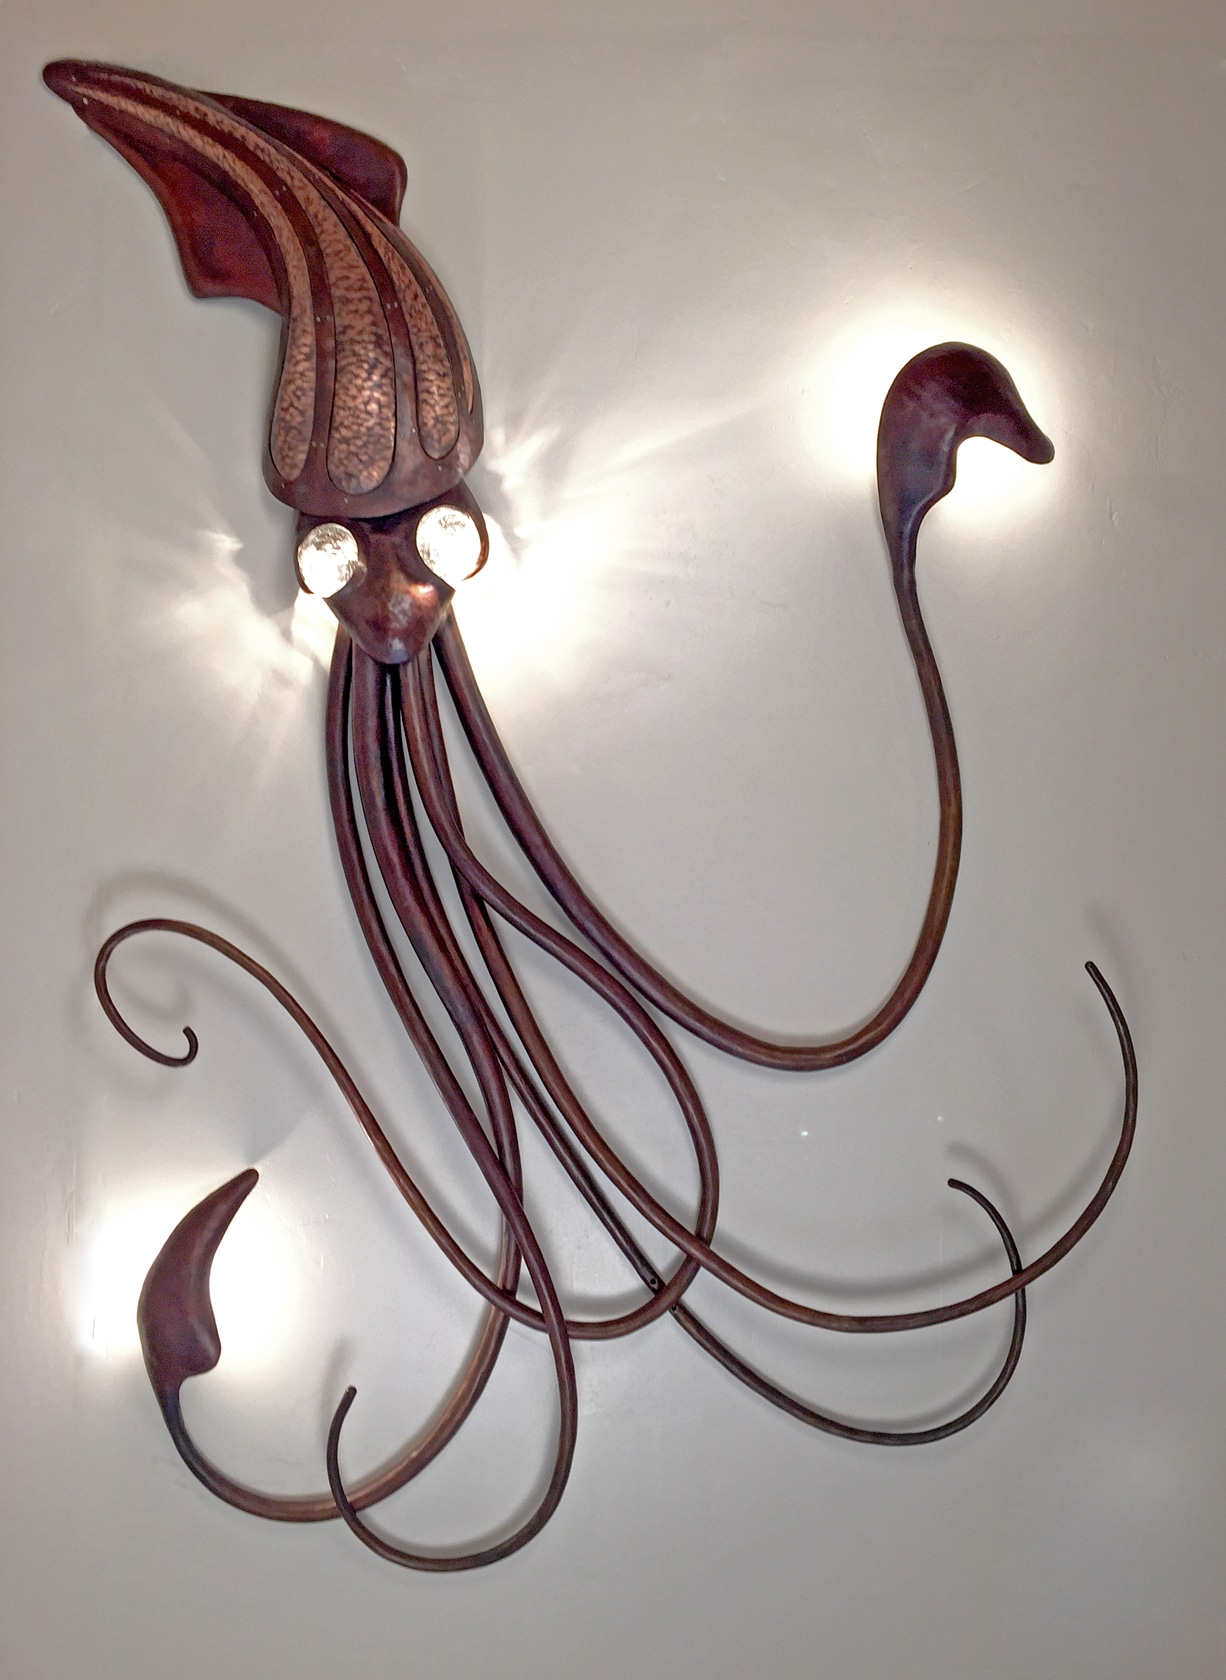 Blacksmith, Forged, Custom, Design, Daniel Hopper Design, Iron, Steel, Copper, Chandelier